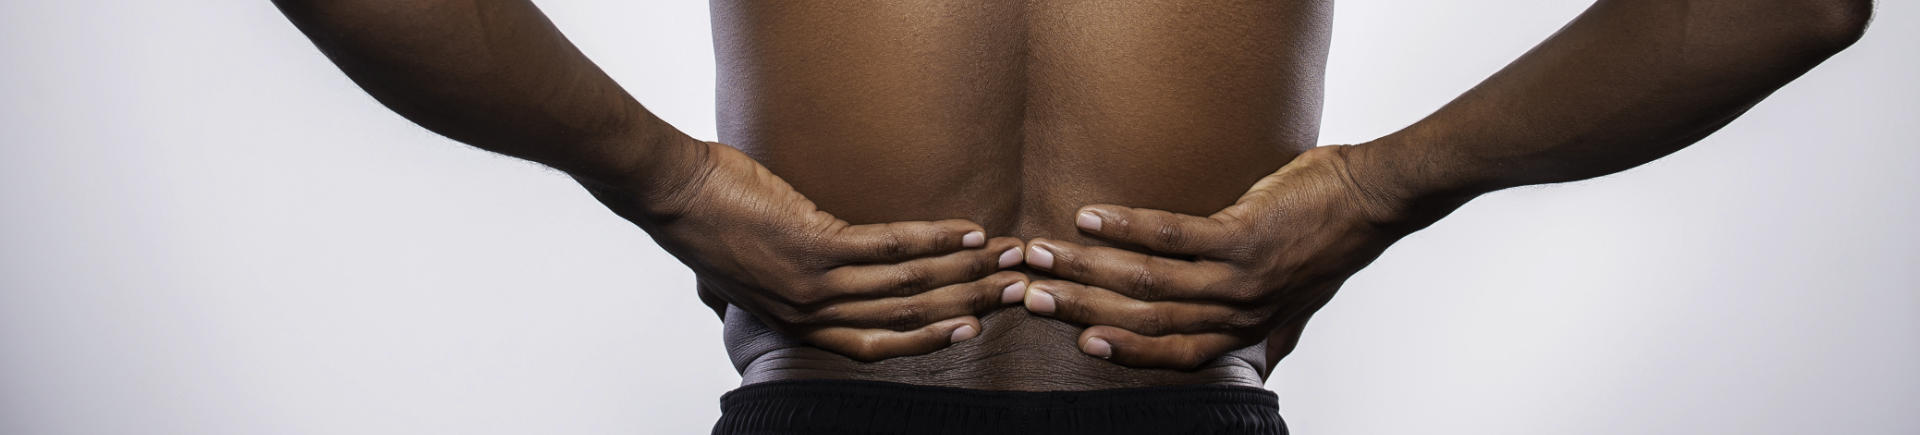 Afro-American man after hip pain treatment